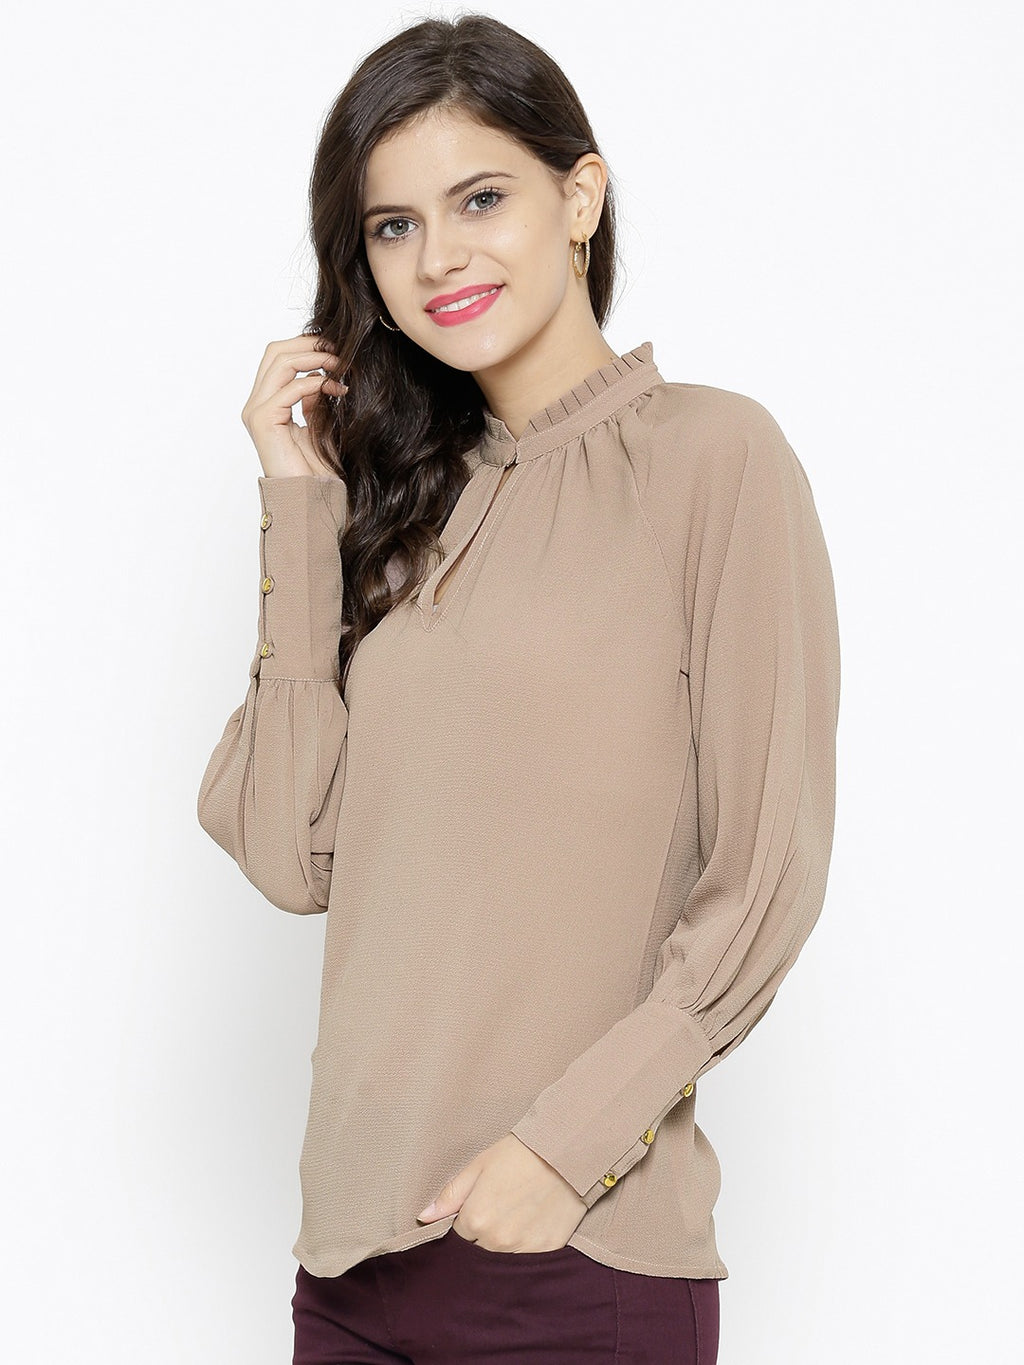 GEORGETTE TEXTURED TOP - chique boutique